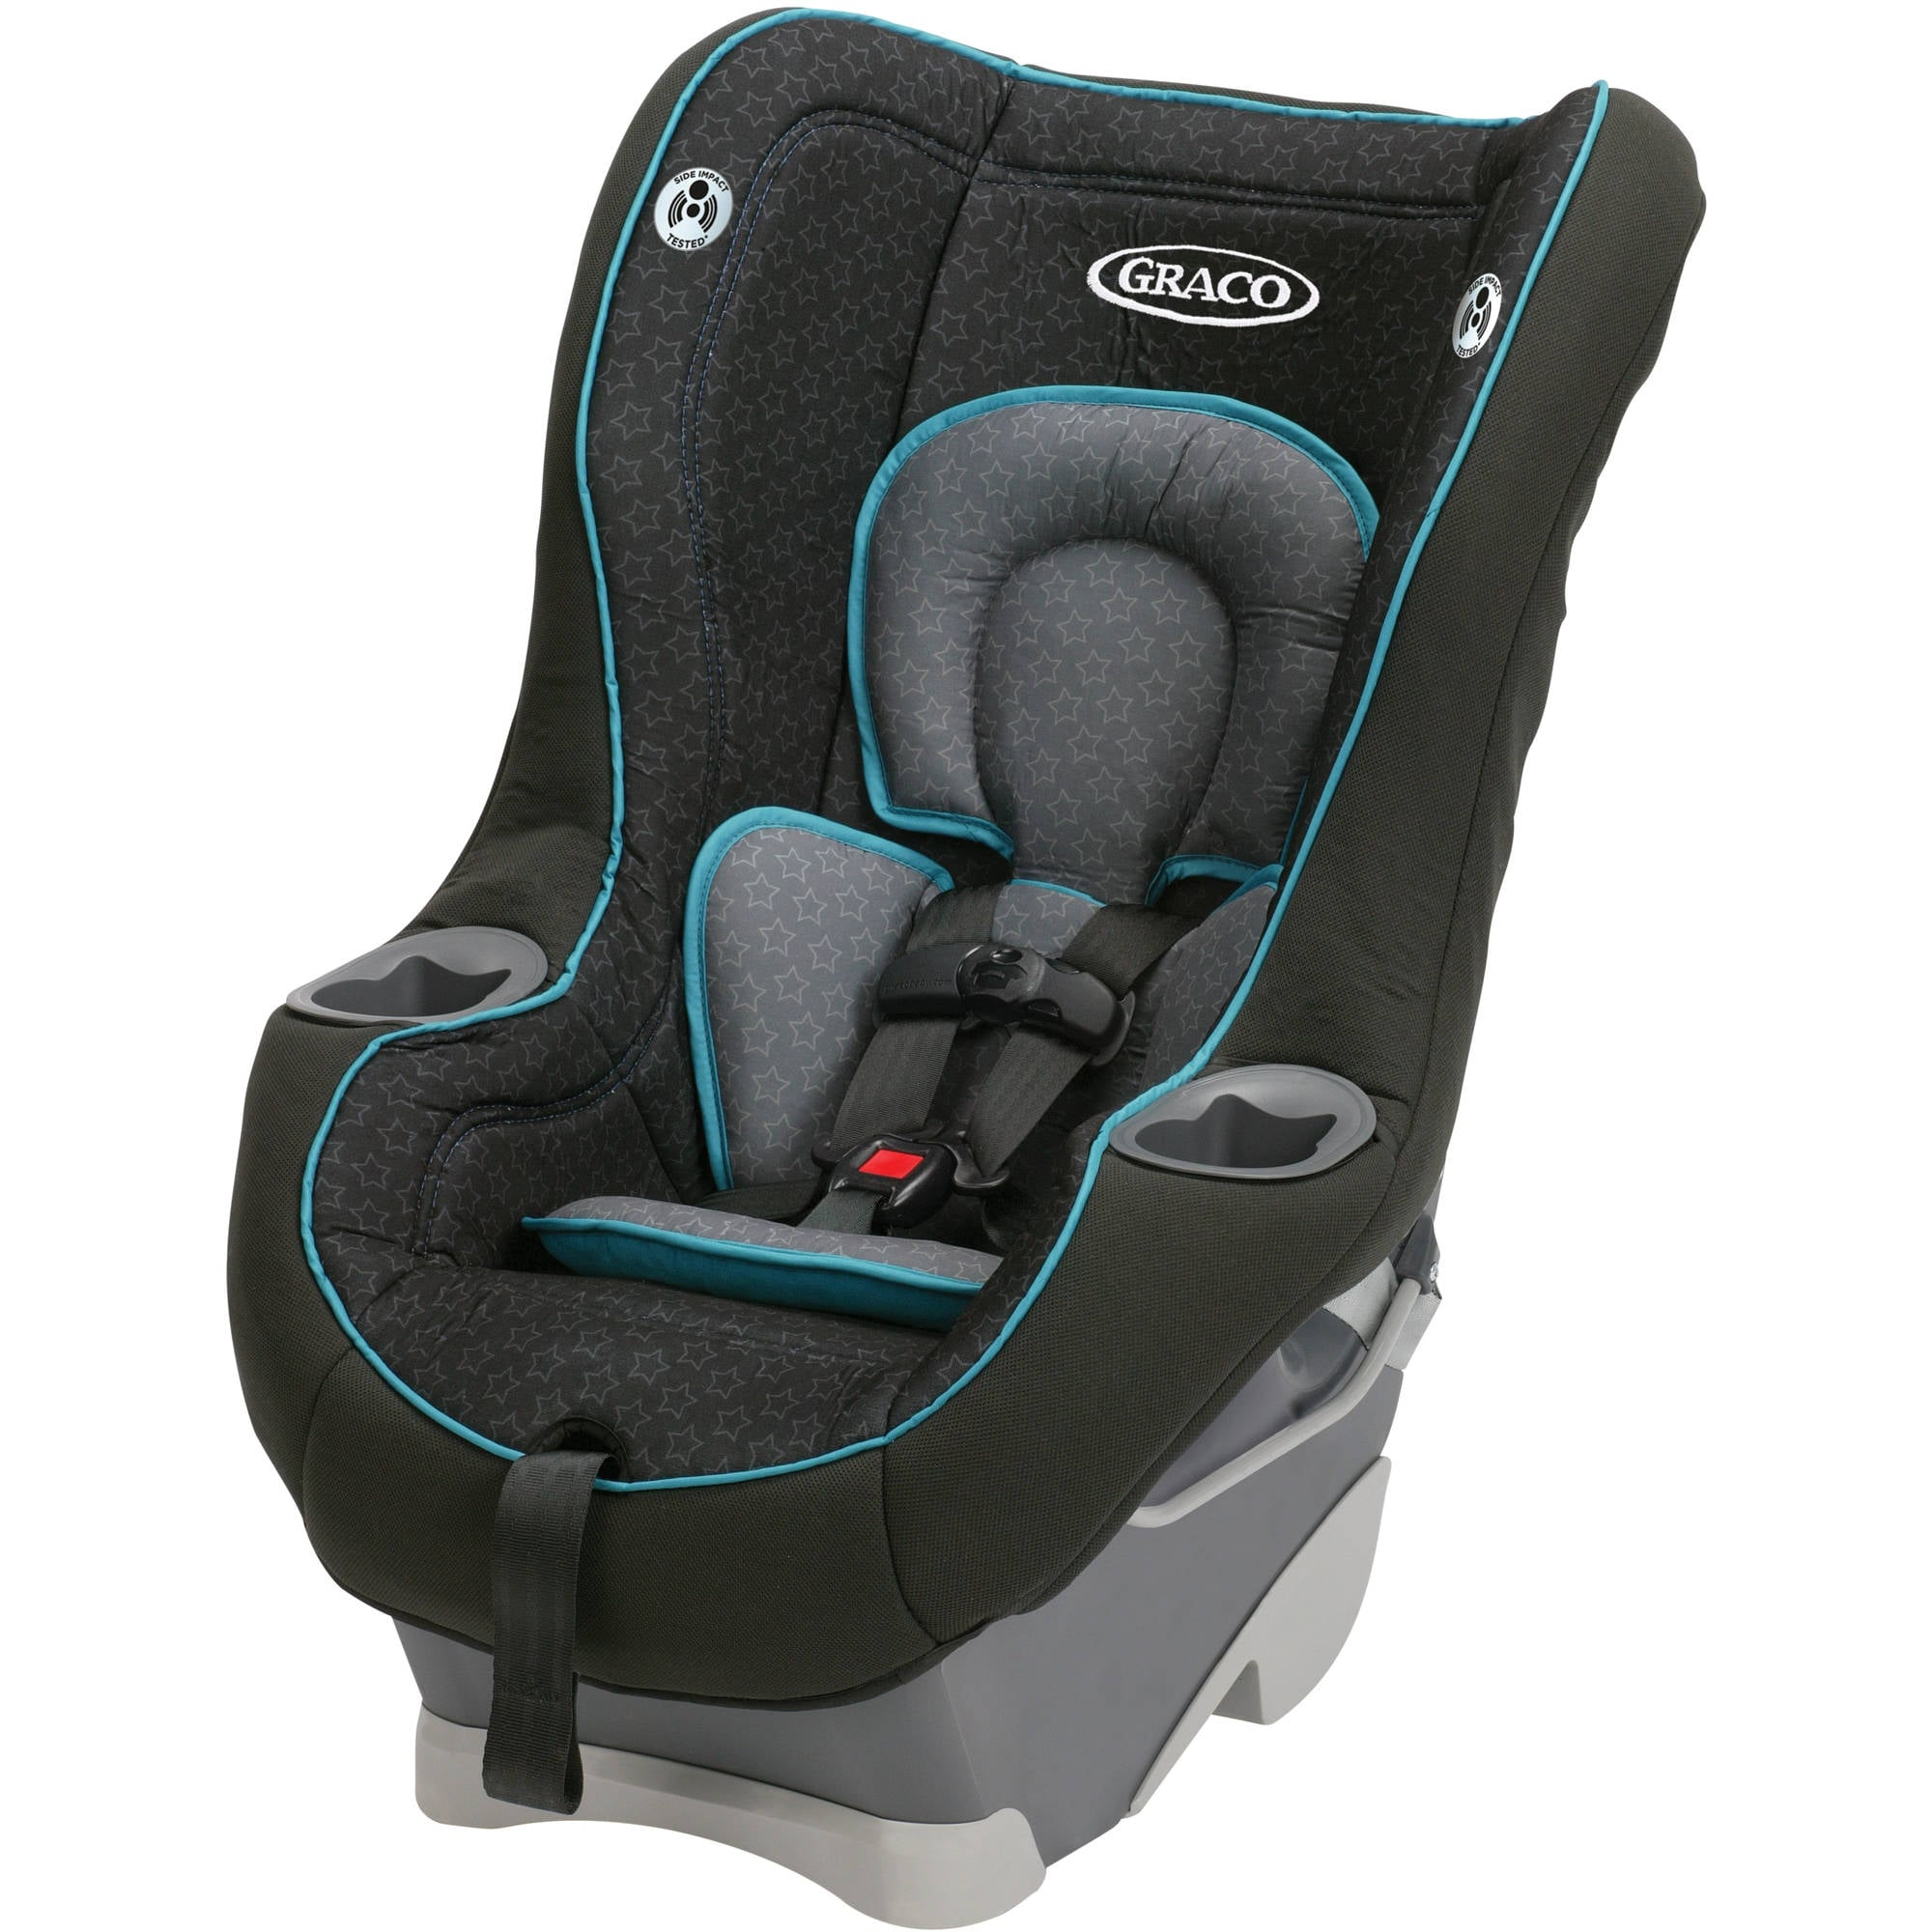 Graco Convertible Car Seat Recall Popsugar Moms